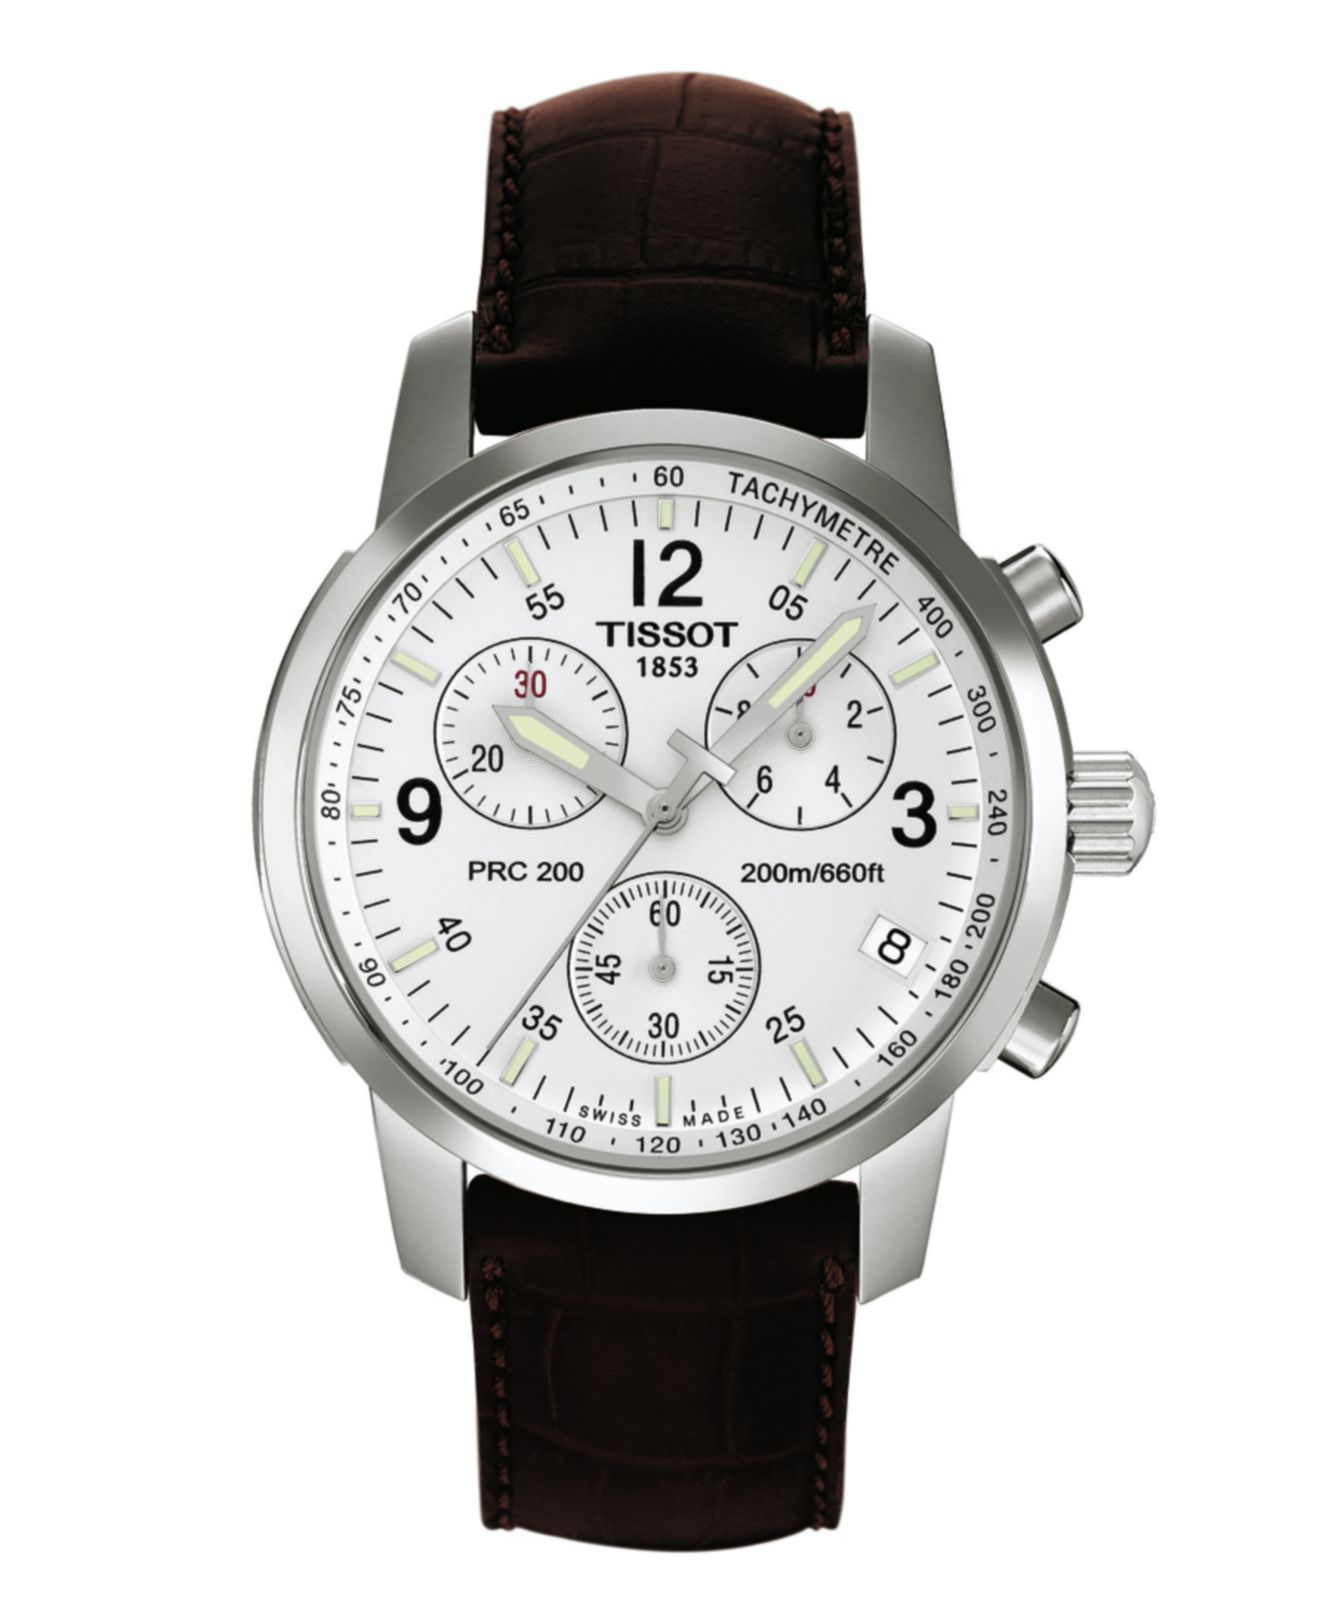 Tissot Watch, Men's Swiss Chronograph PRC 200 Brown Leather Strap T17151632 - All Watches - Jewelry & Watches - Macy's